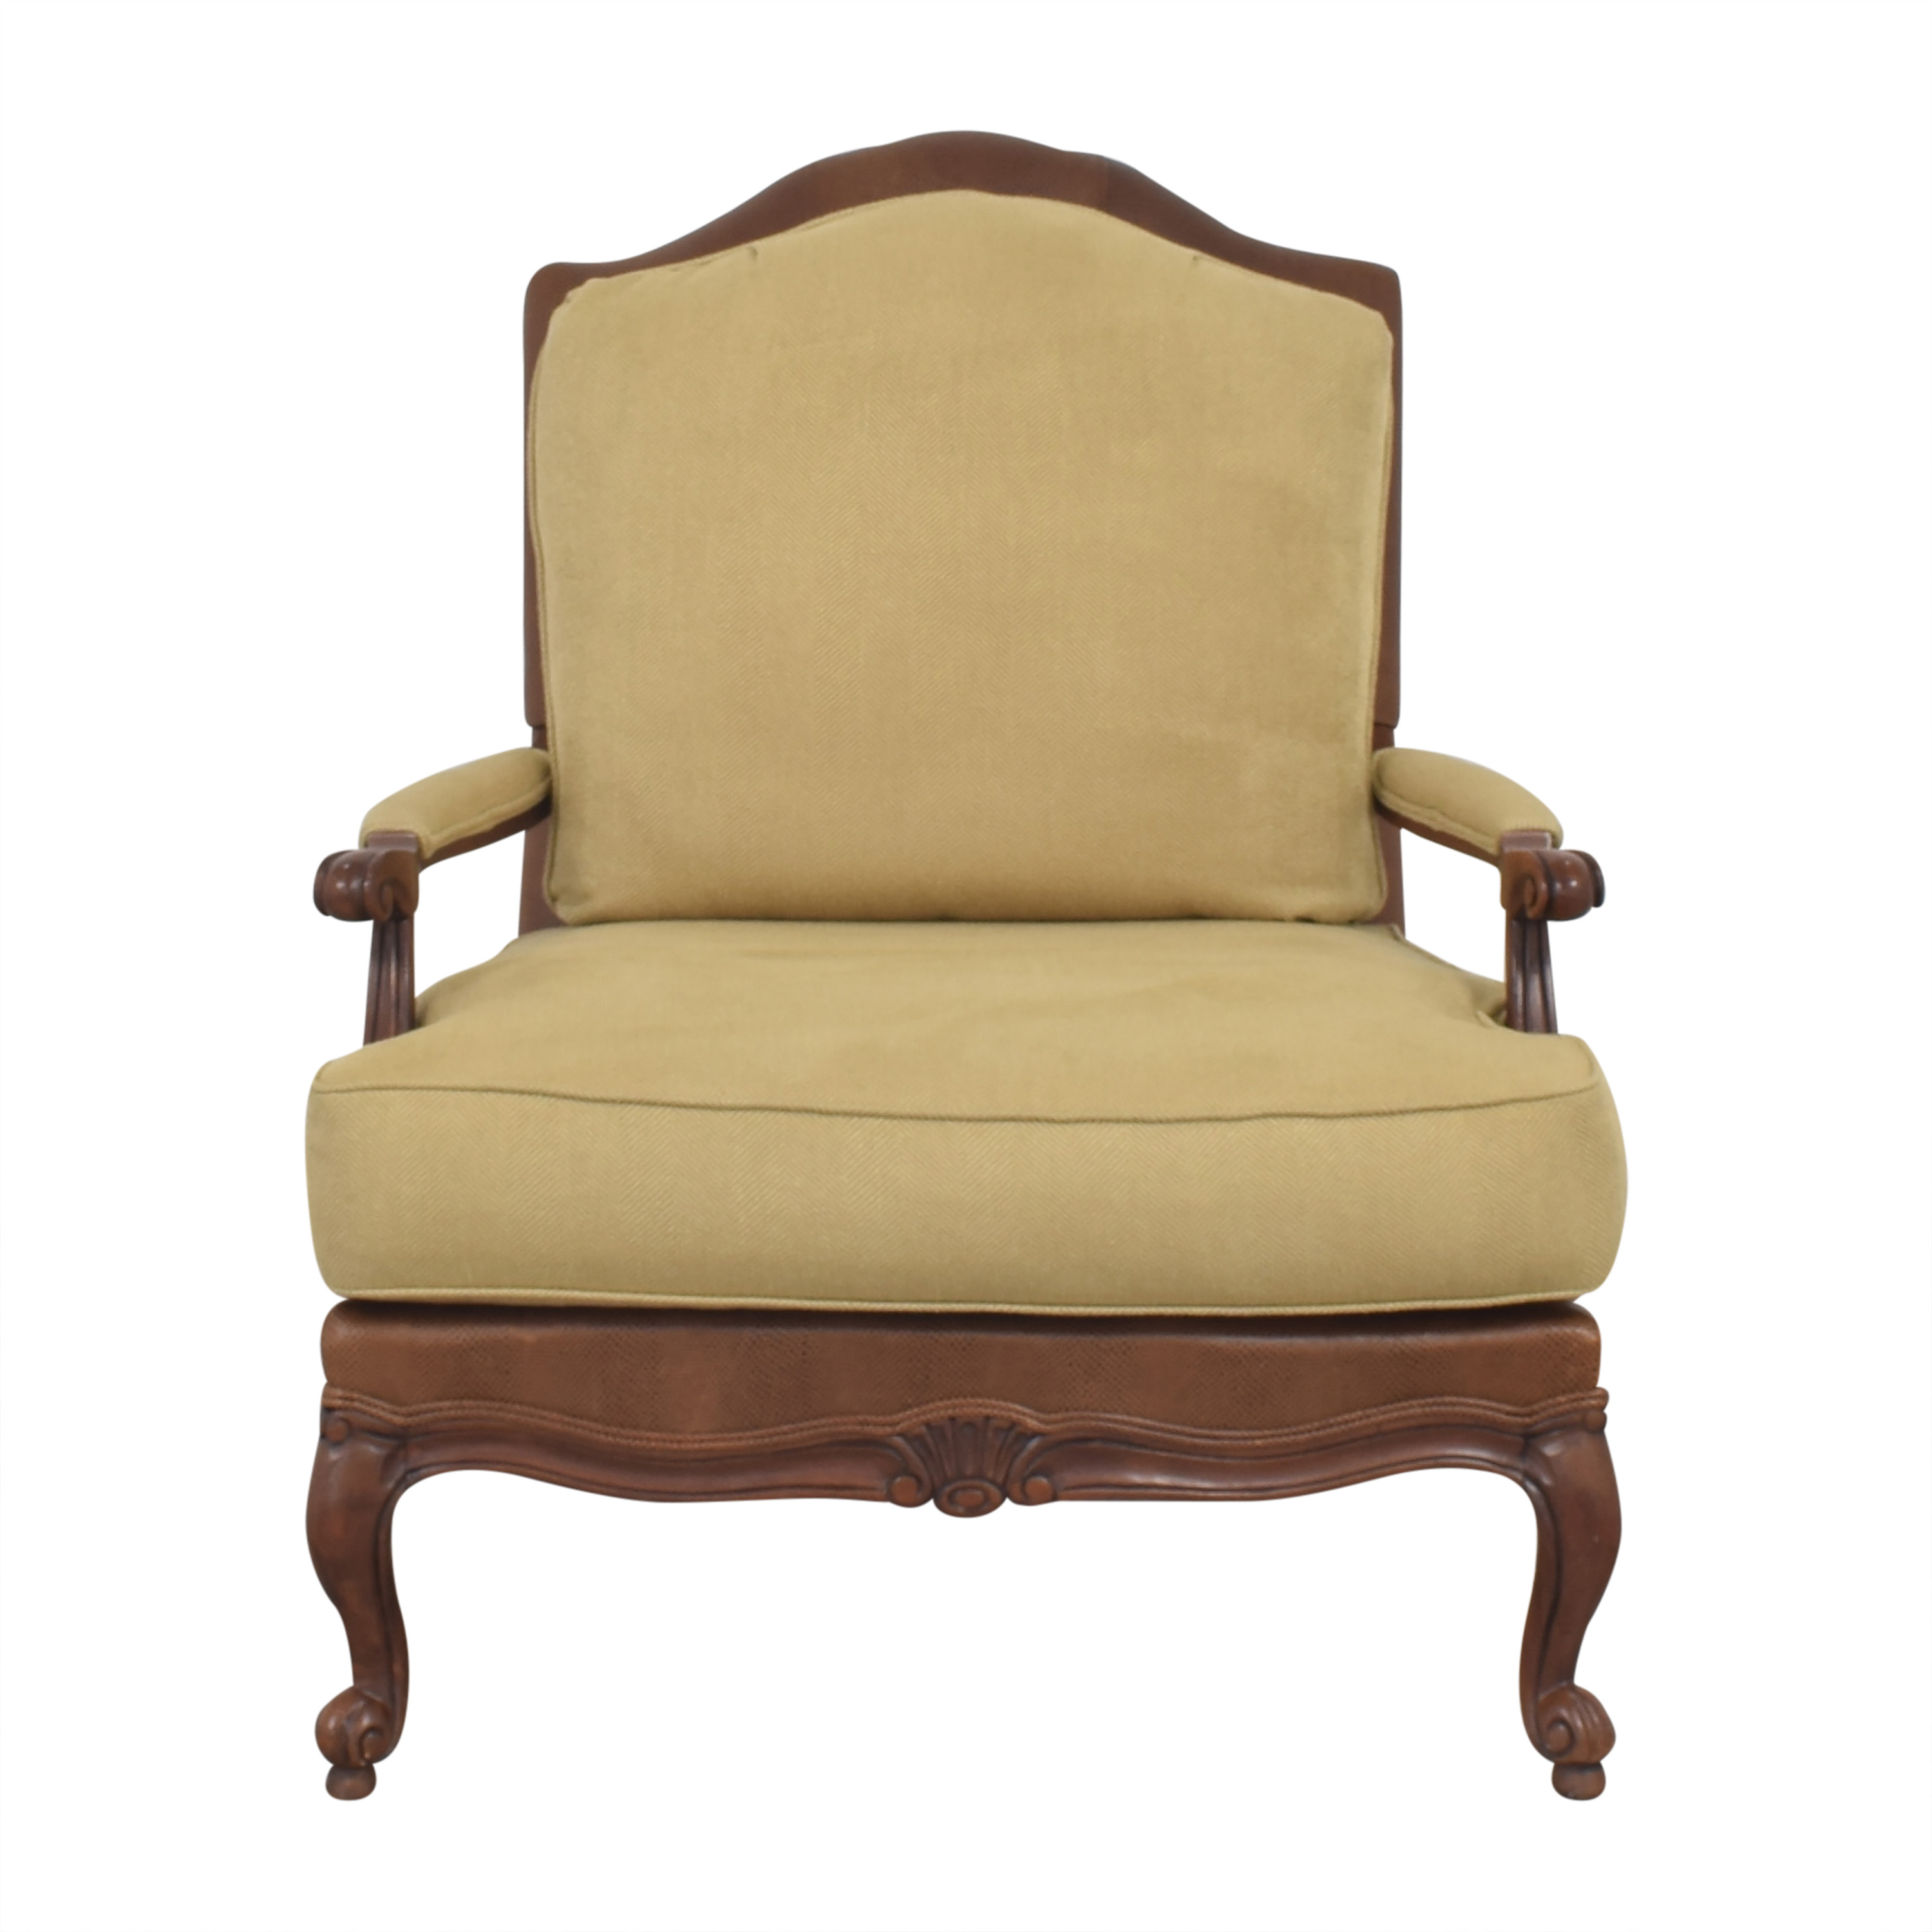 buy Ethan Allen Ethan Allen Accent Chair online